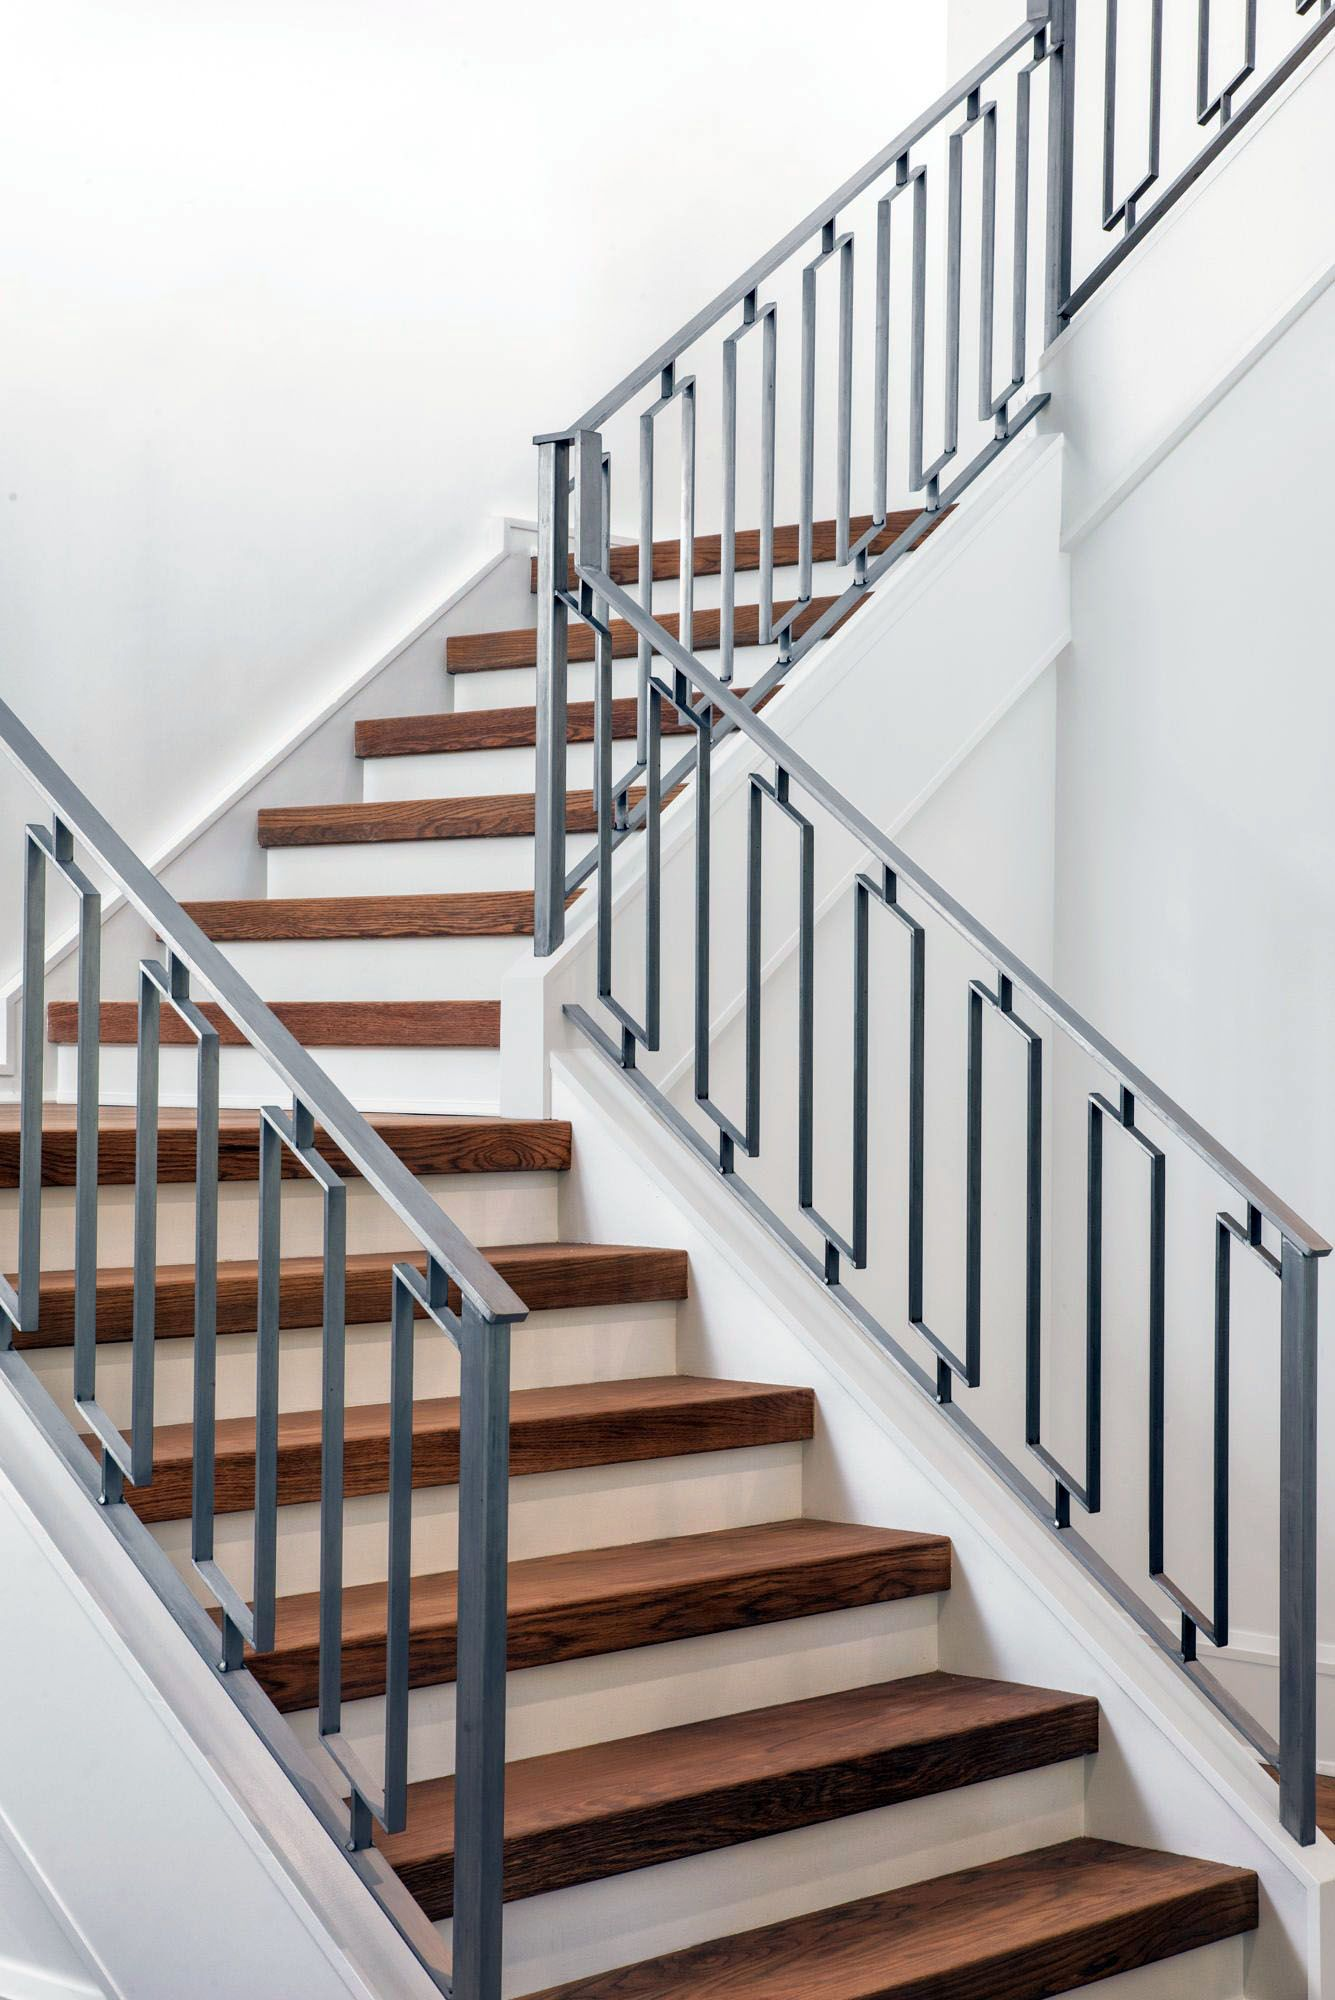 The Next Level 14 Stair Railings To Elevate Your Home Design | Modern Staircases And Railings | Wire | Contemporary | Wood | Futuristic | Elegant